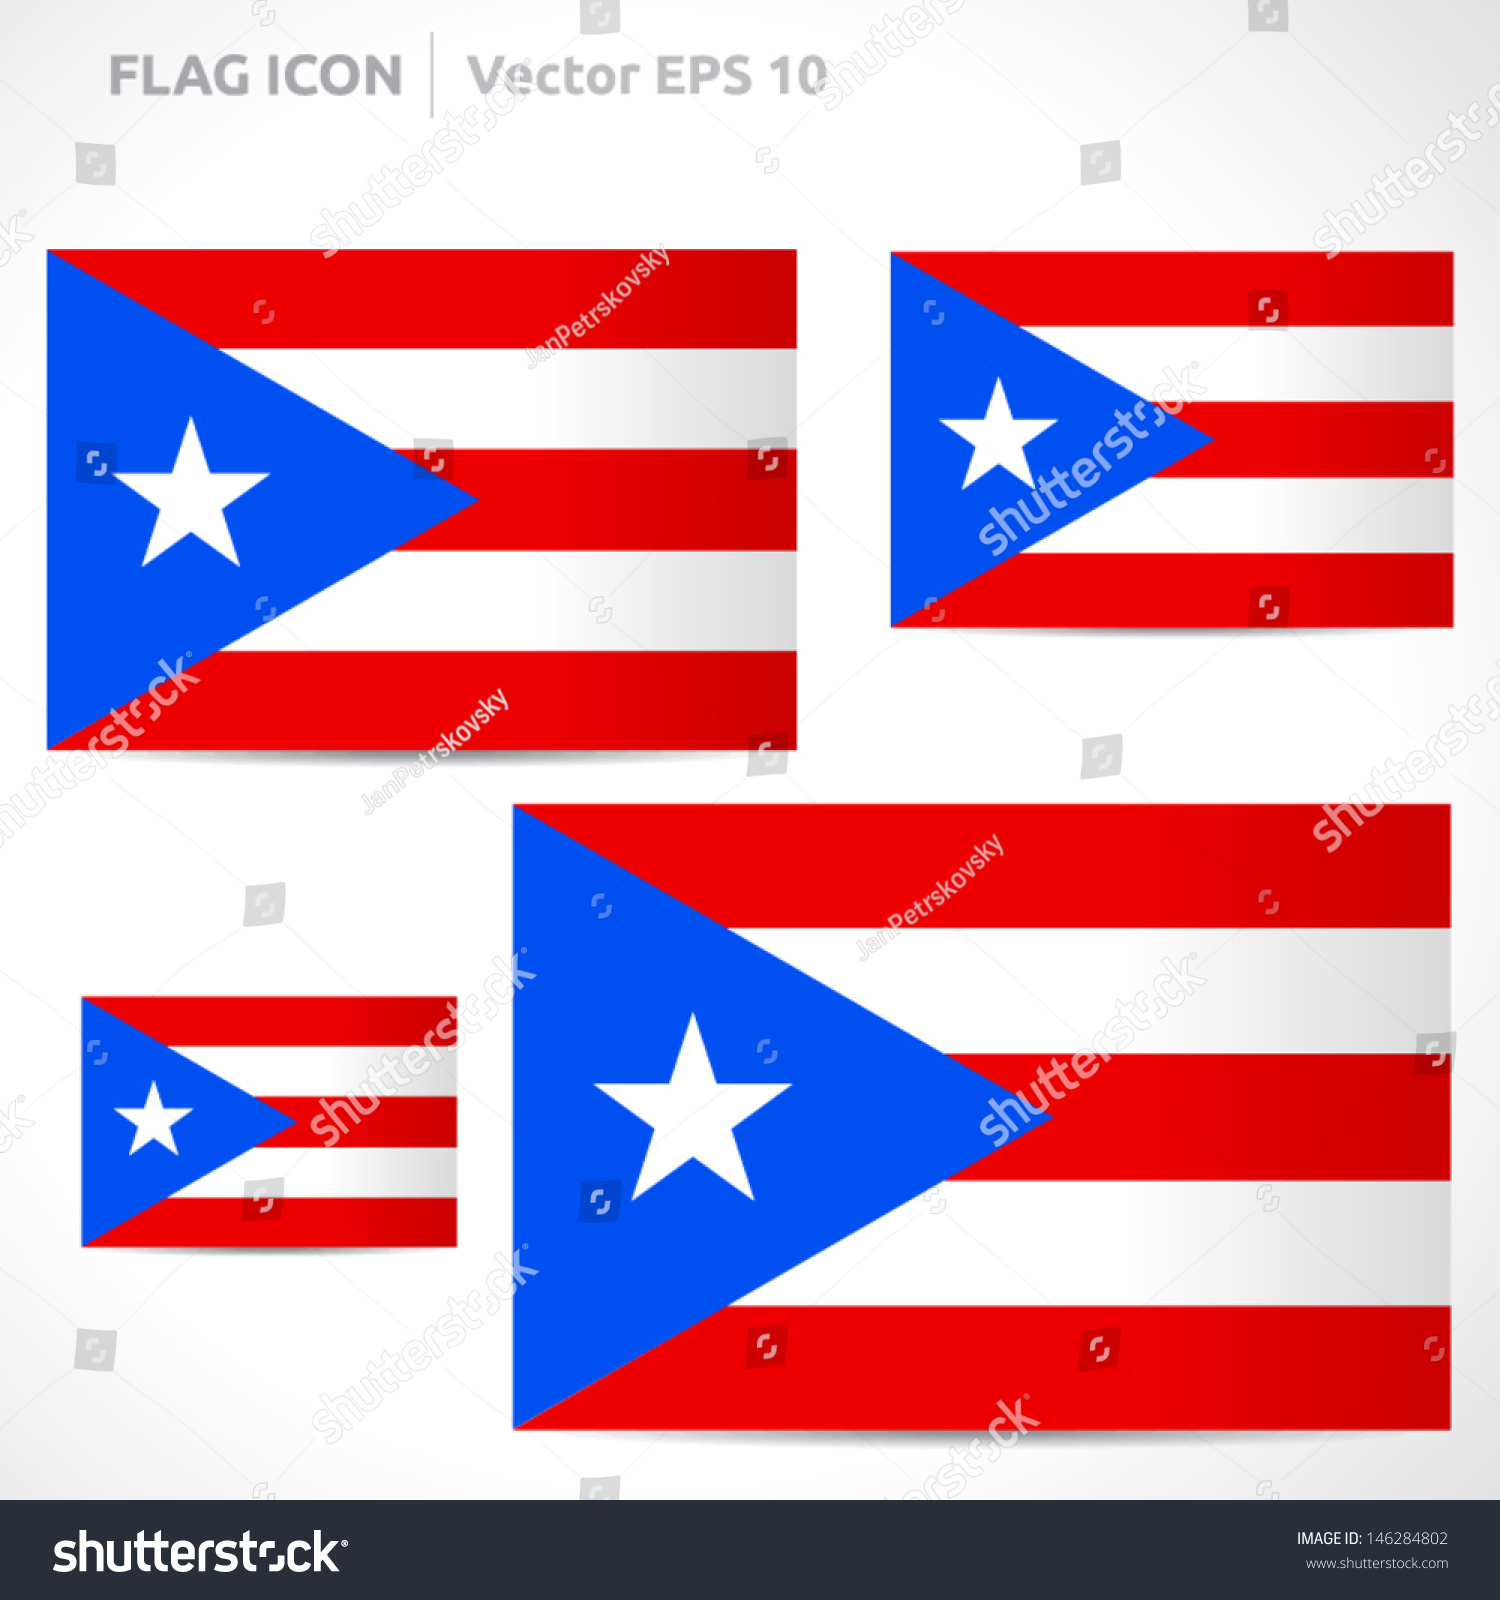 Puerto rico flag template vector symbol stock vector 146284802 puerto rico flag template vector symbol design color red blue and white icon biocorpaavc Choice Image